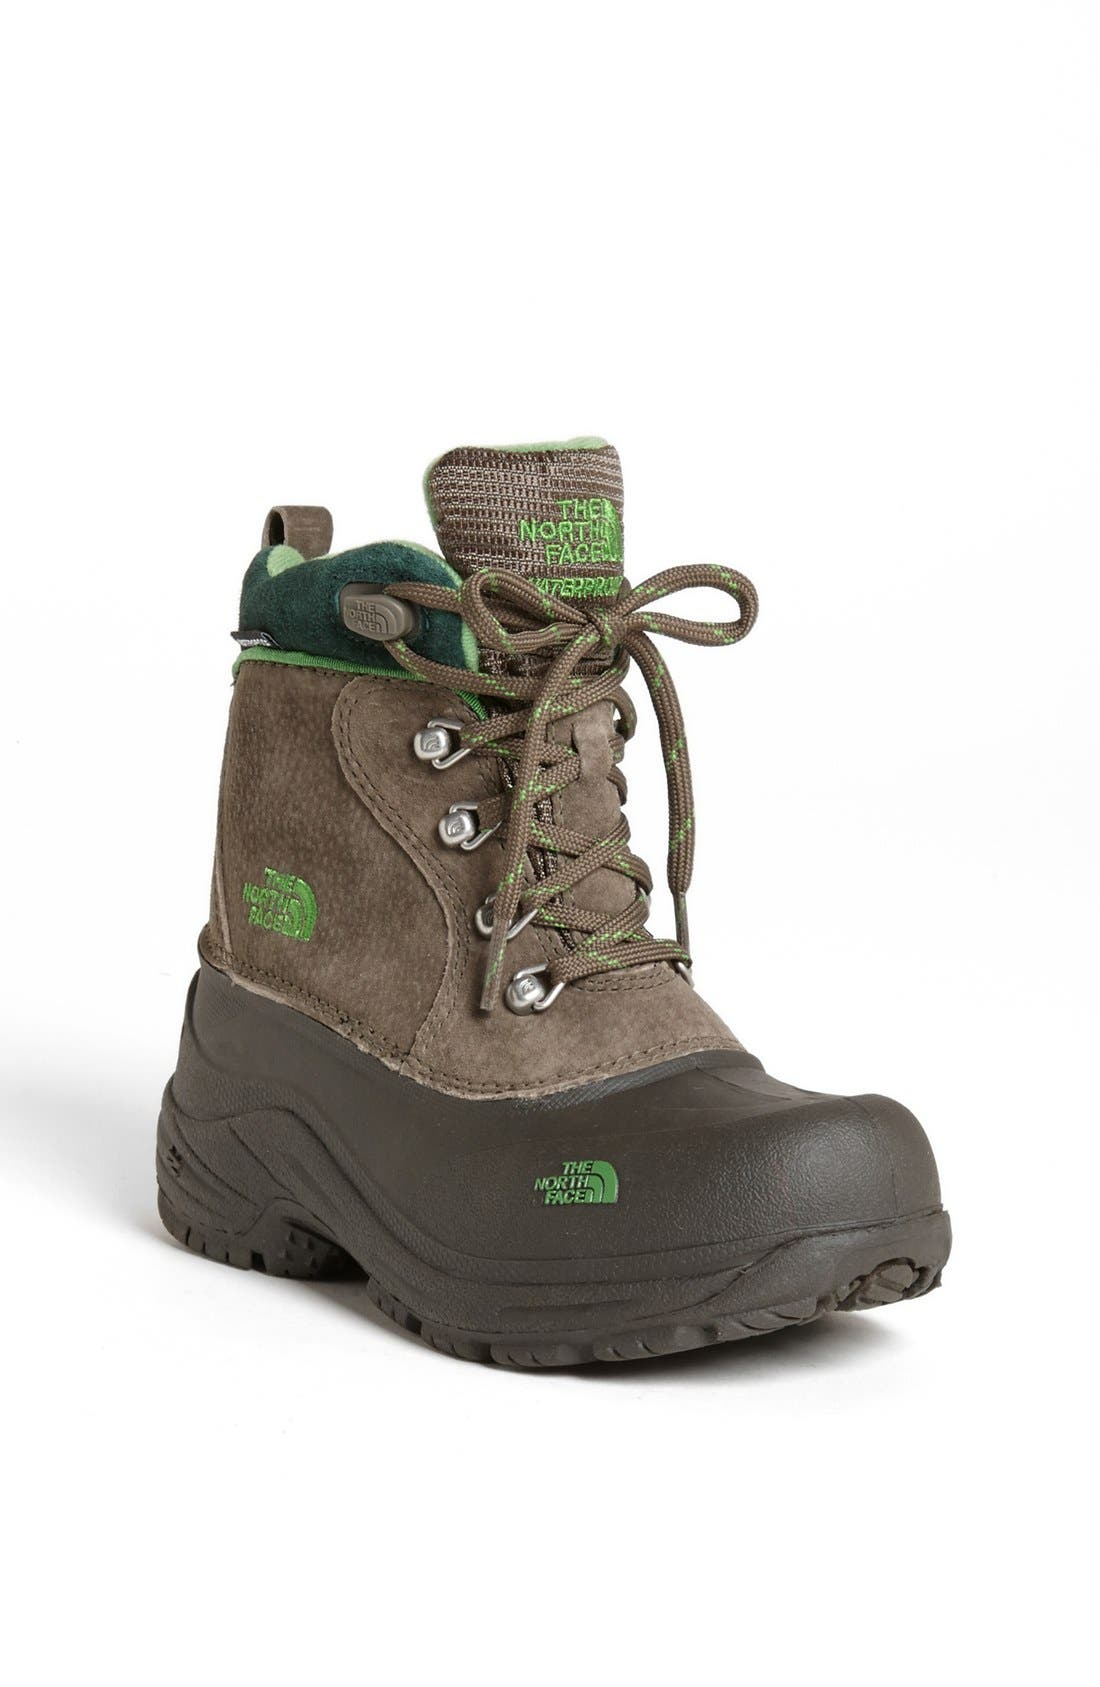 Main Image - The North Face 'Chilkats' Lace Up Waterproof Snow Boot (Toddler, Little Kid & Big Kid)